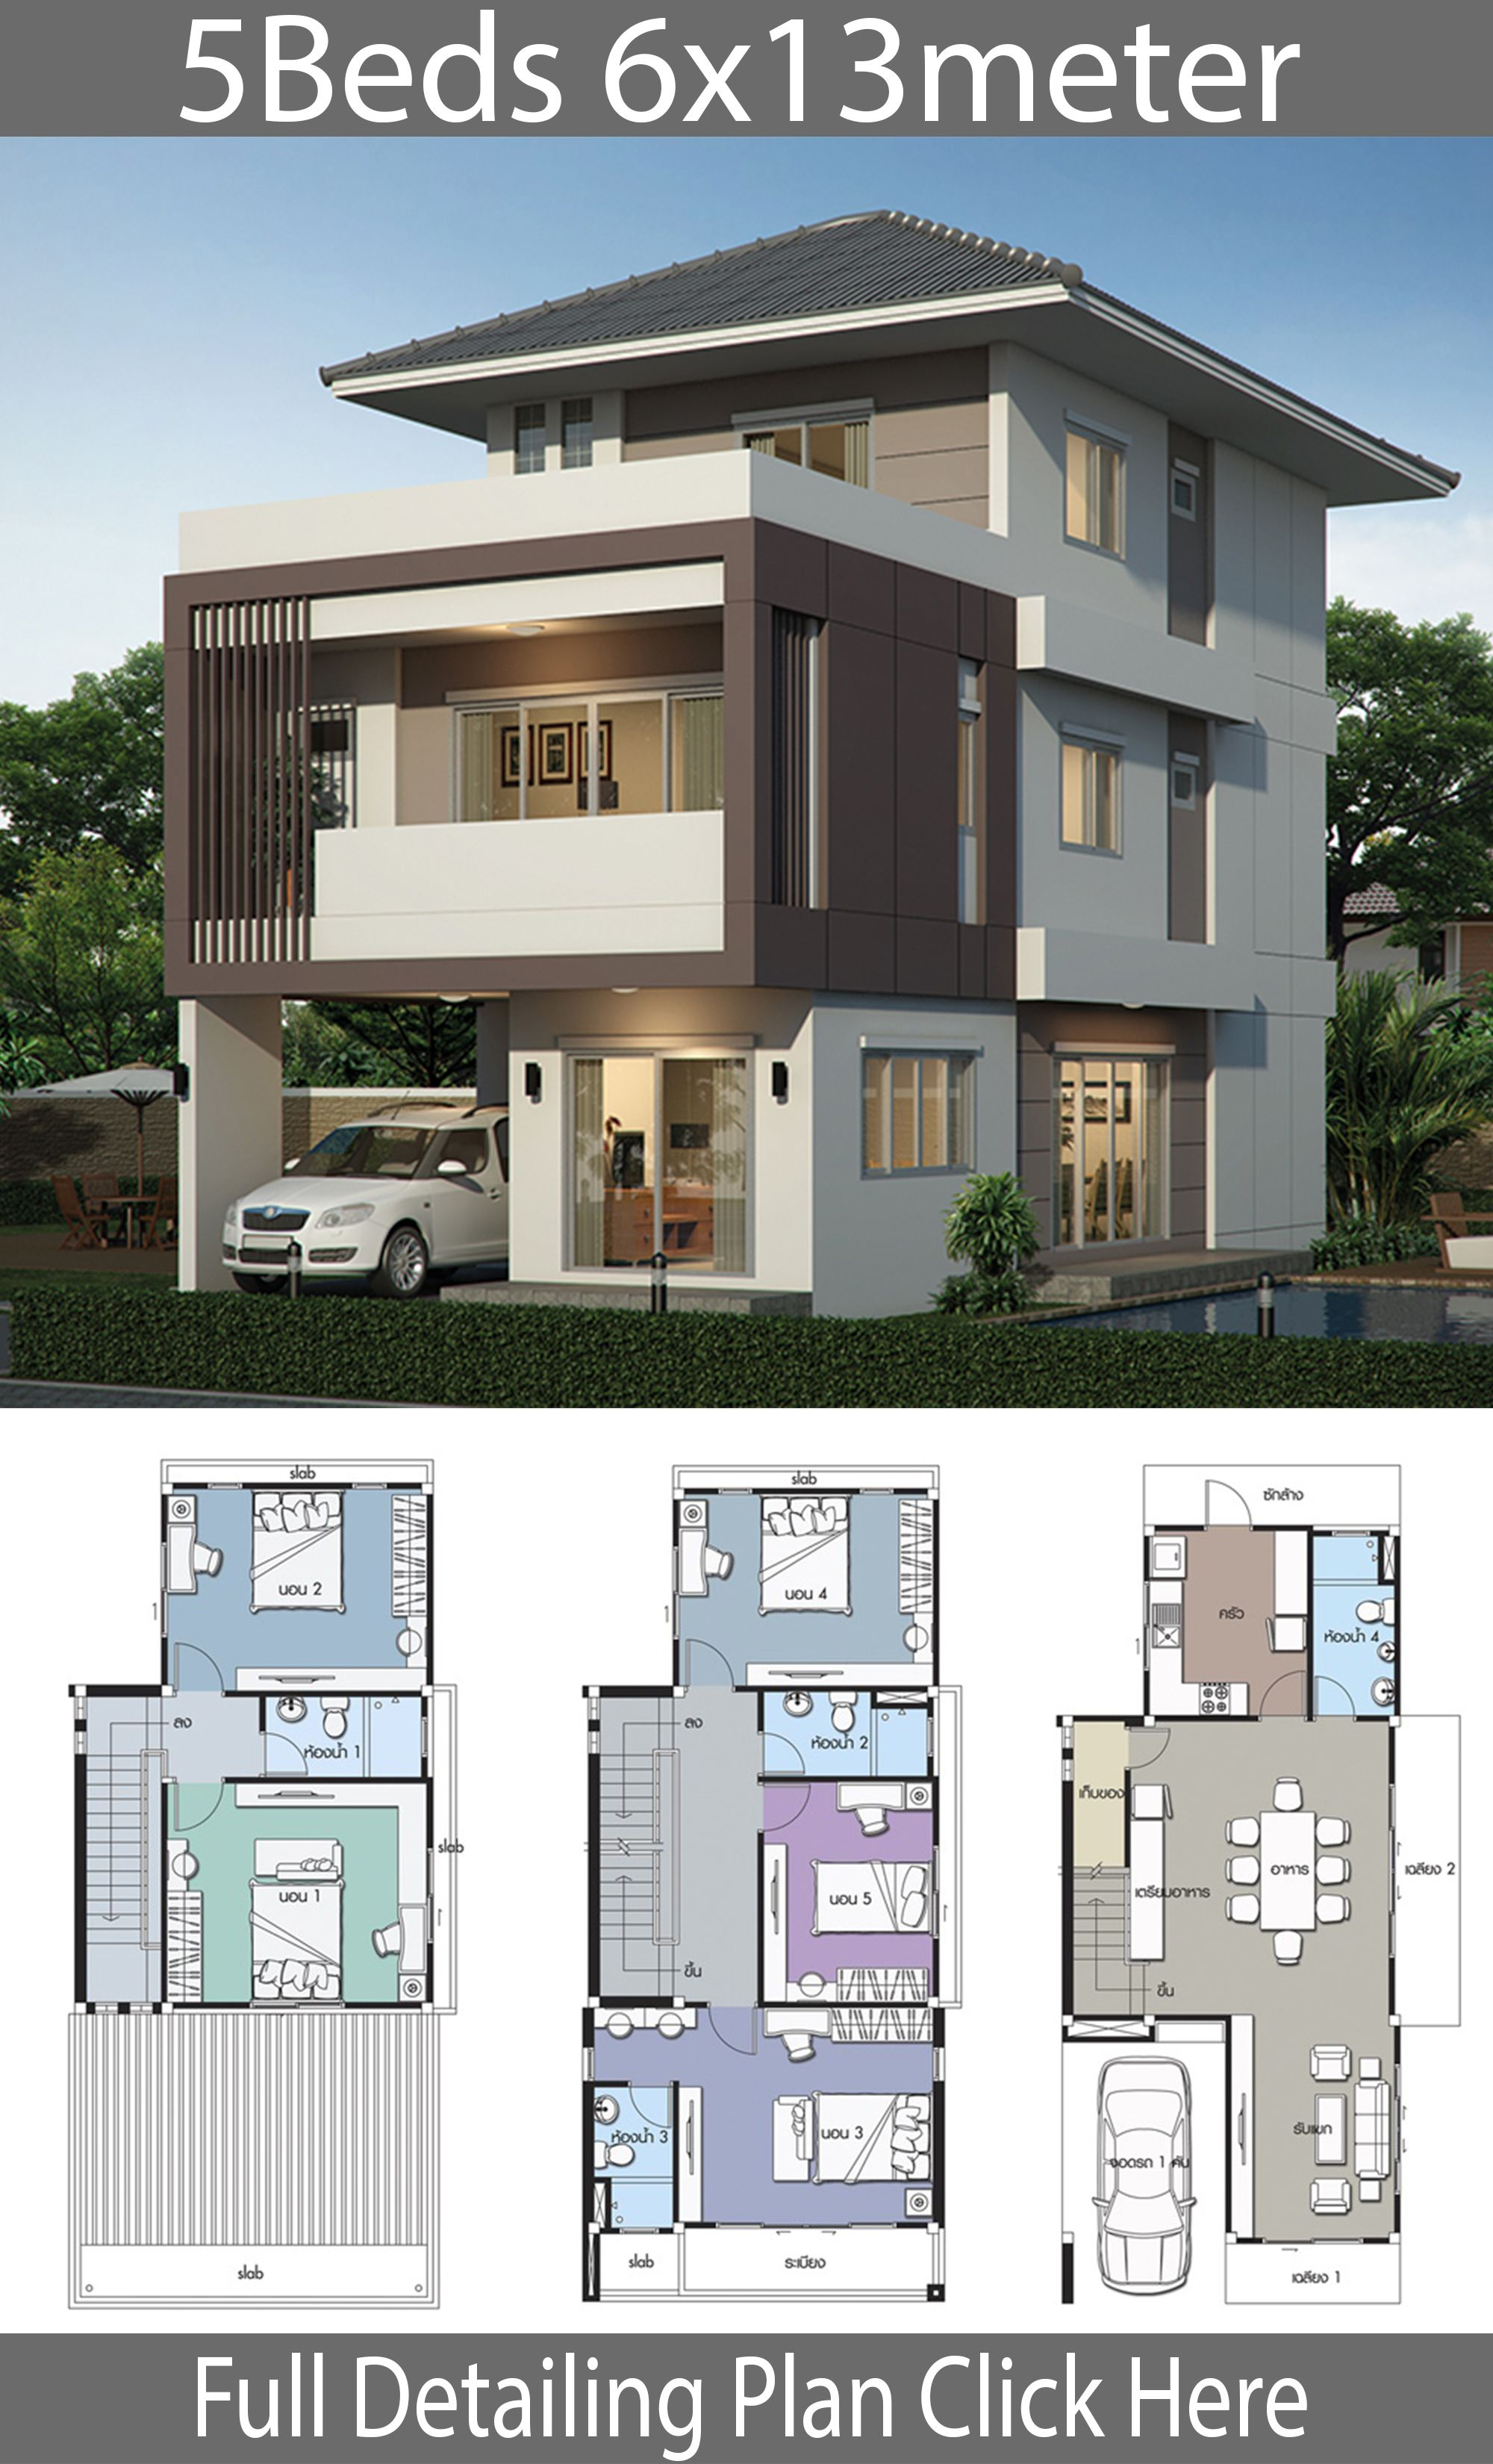 Home Design Plan 6x13m With 5 Bedrooms Bungalow House Design